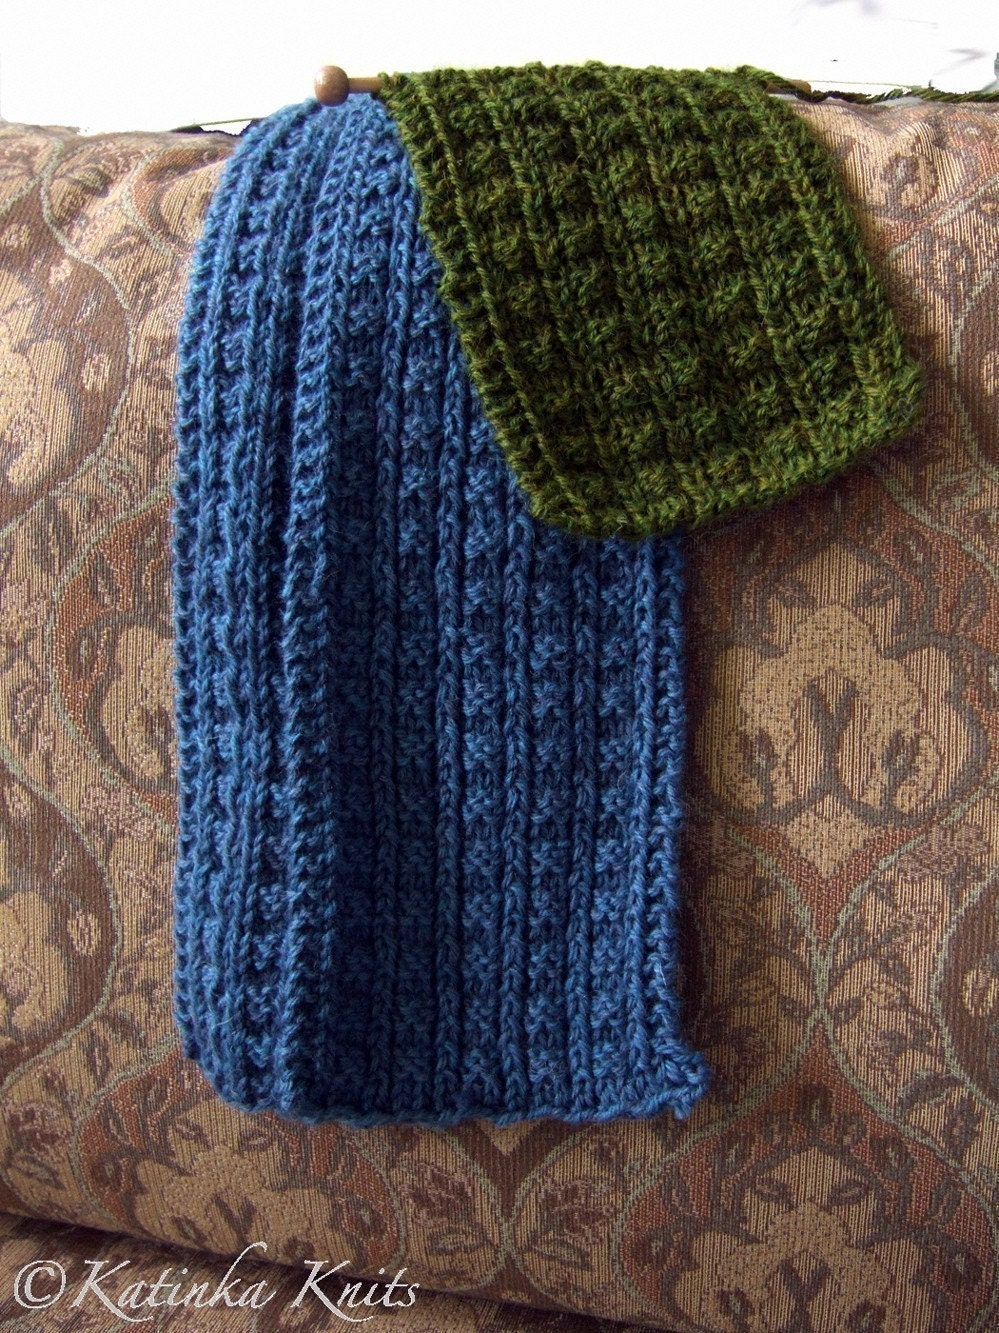 Knitting Pattern Ribbed Scarf : Items similar to Sailors Rib Scarf Knitting Pattern on Etsy